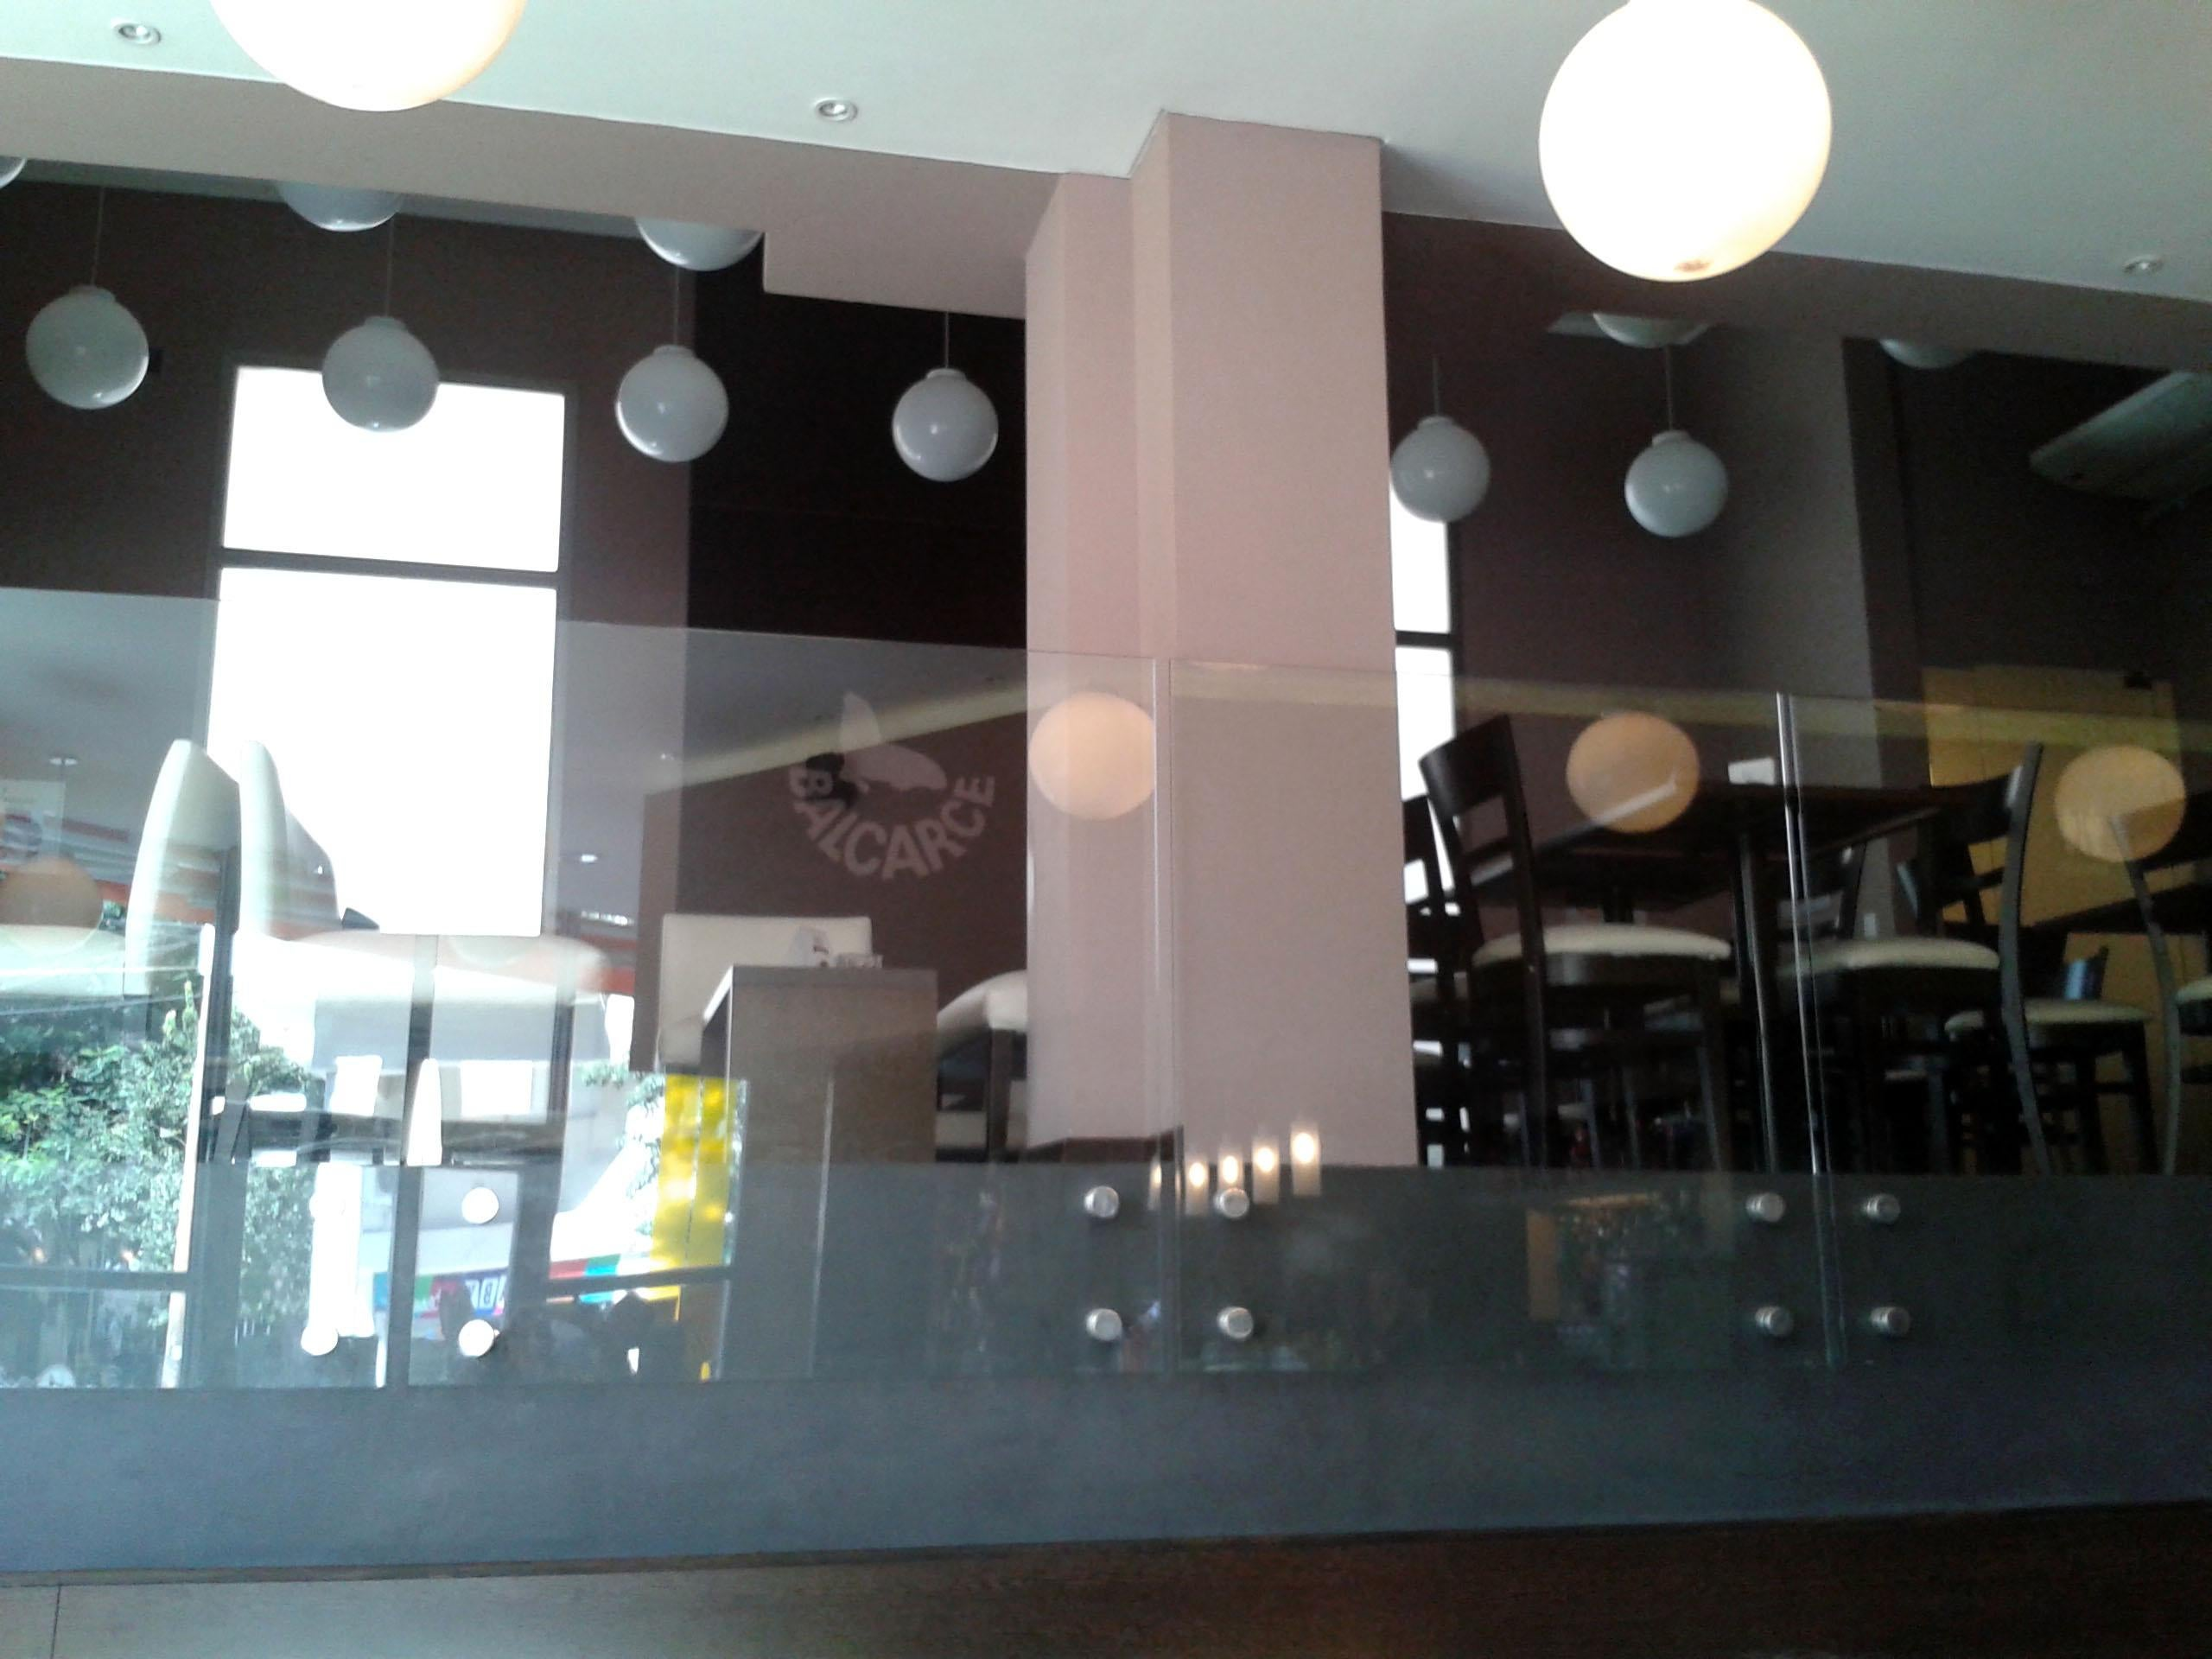 Photos of balcarce coffee images for 5 mobilia place gnangara